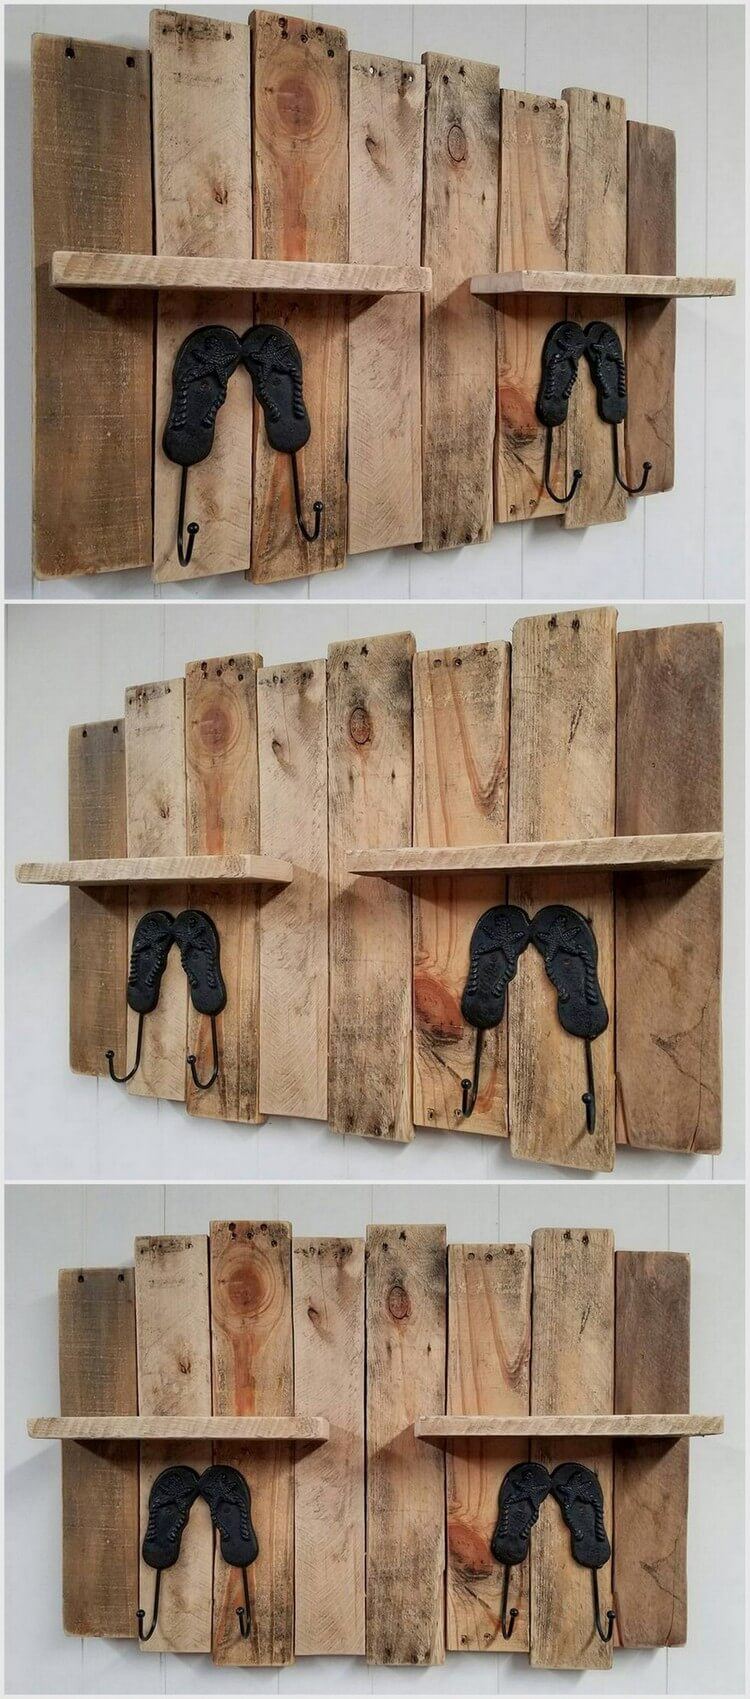 Wood Pallet Shelf and Coar Rack